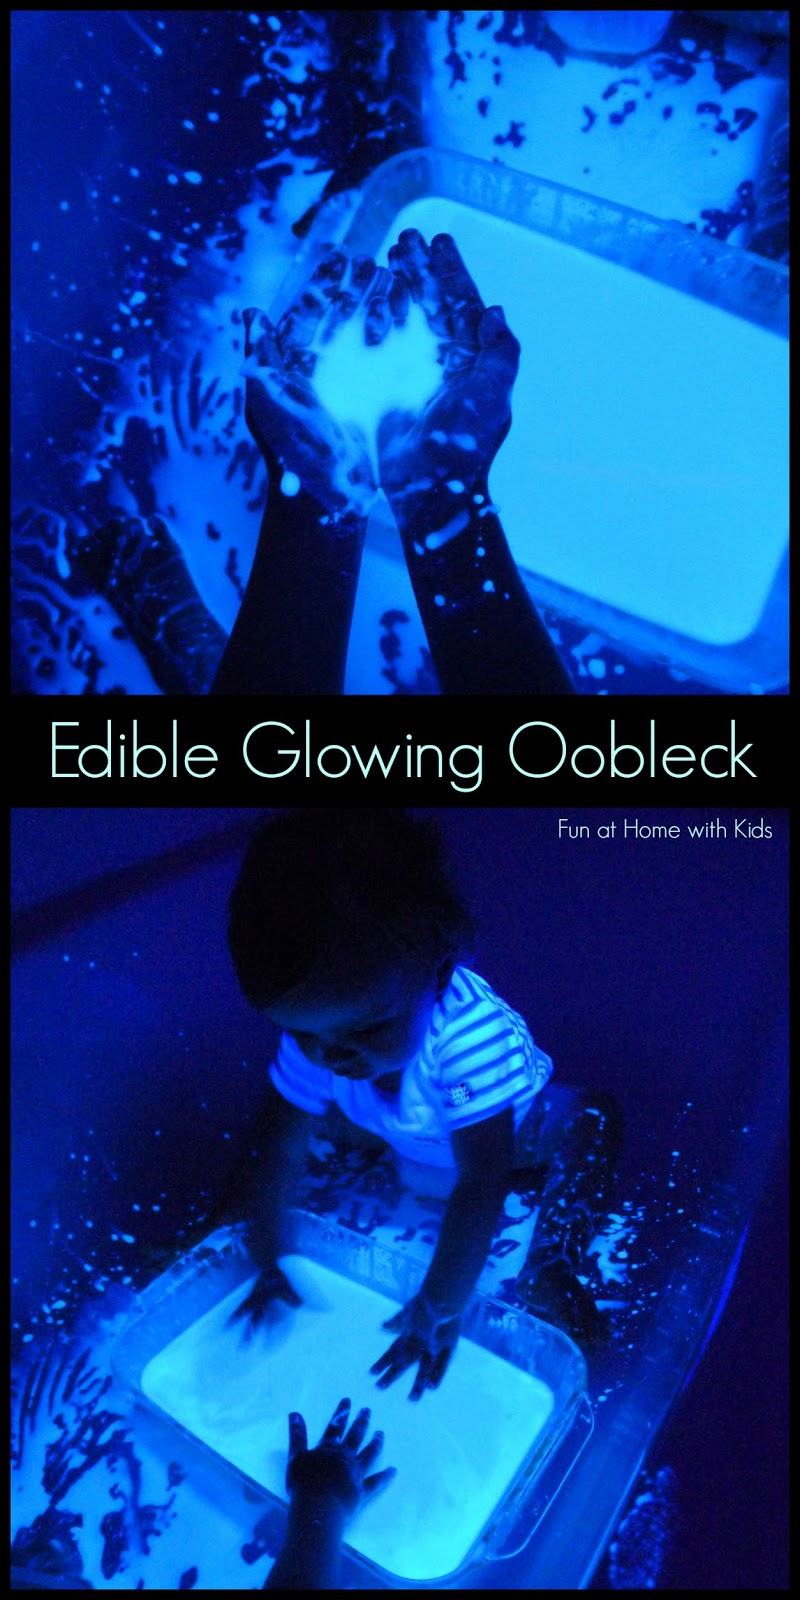 Glowing Ooblack